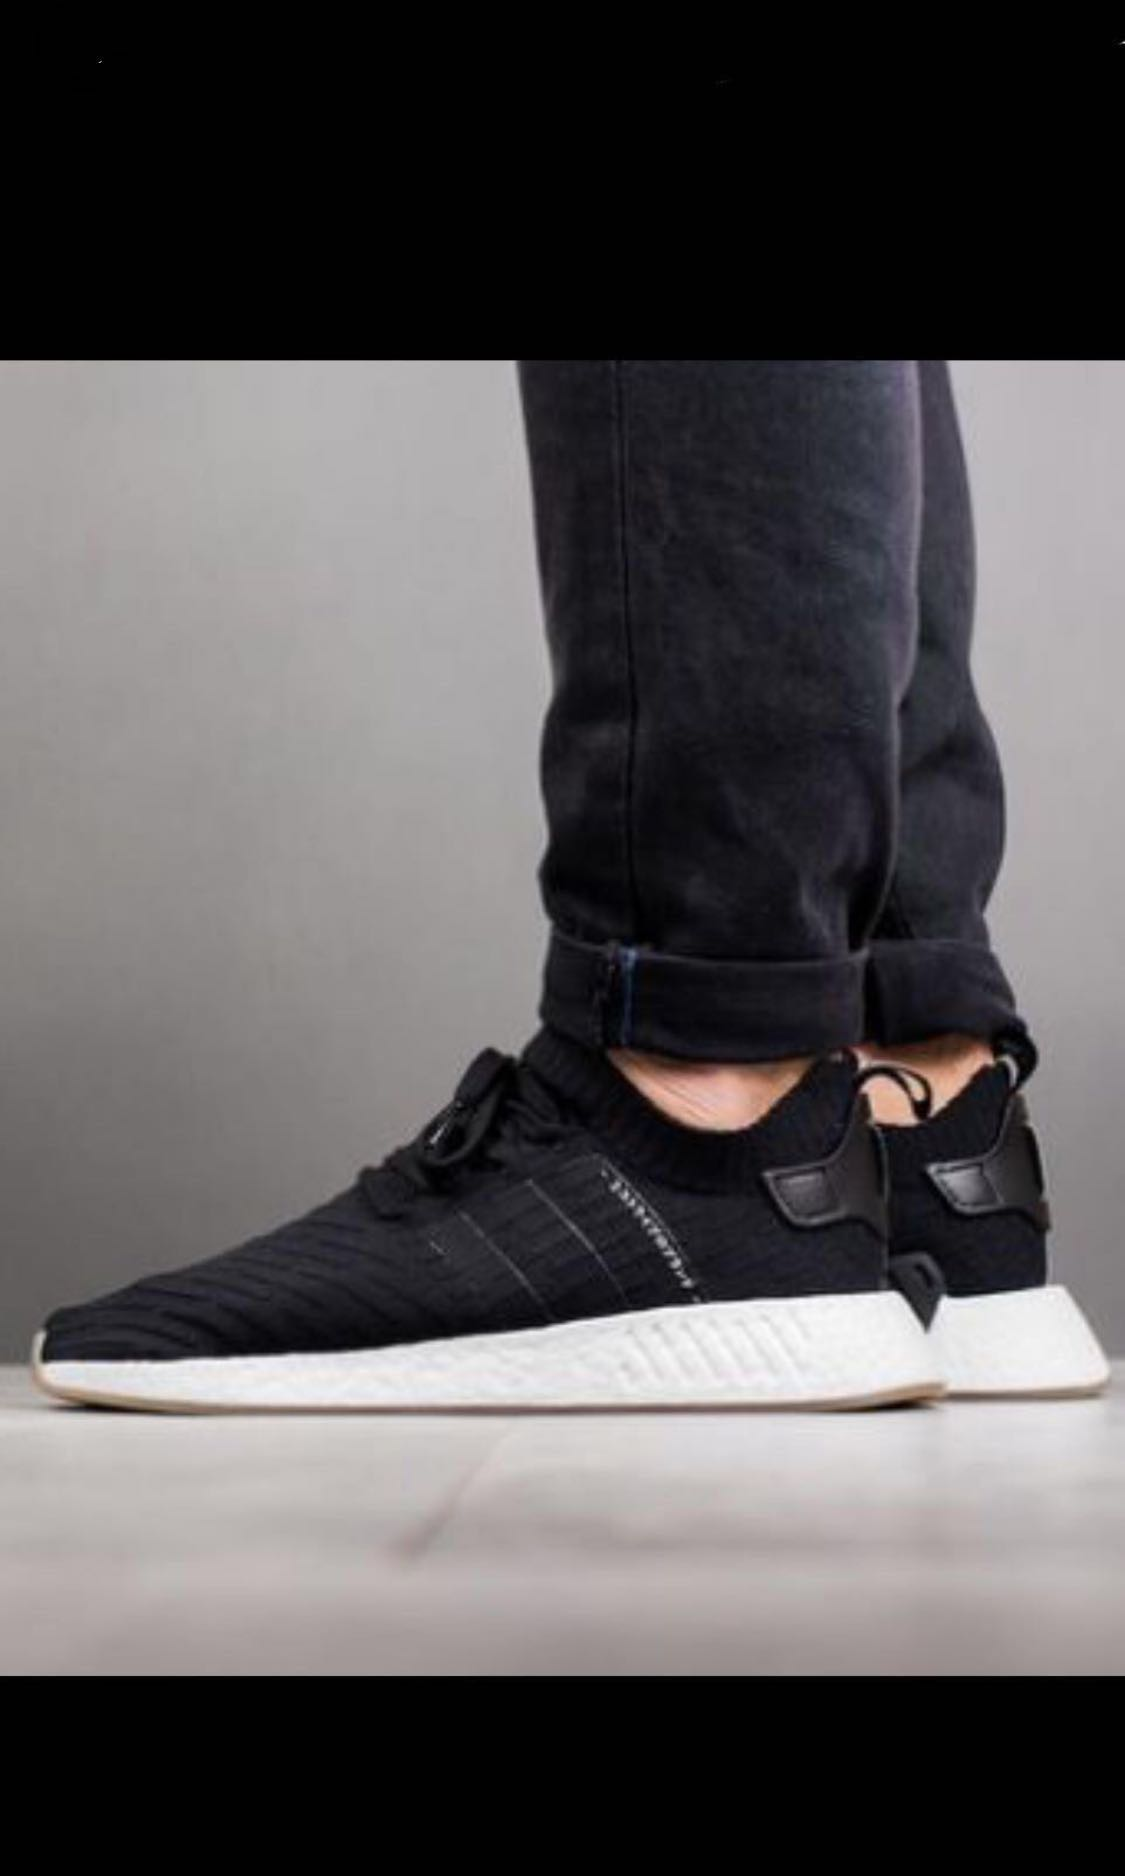 25d4f85aa Sales Clearance ~ Adidas NMD, Men's Fashion, Footwear, Sneakers on ...